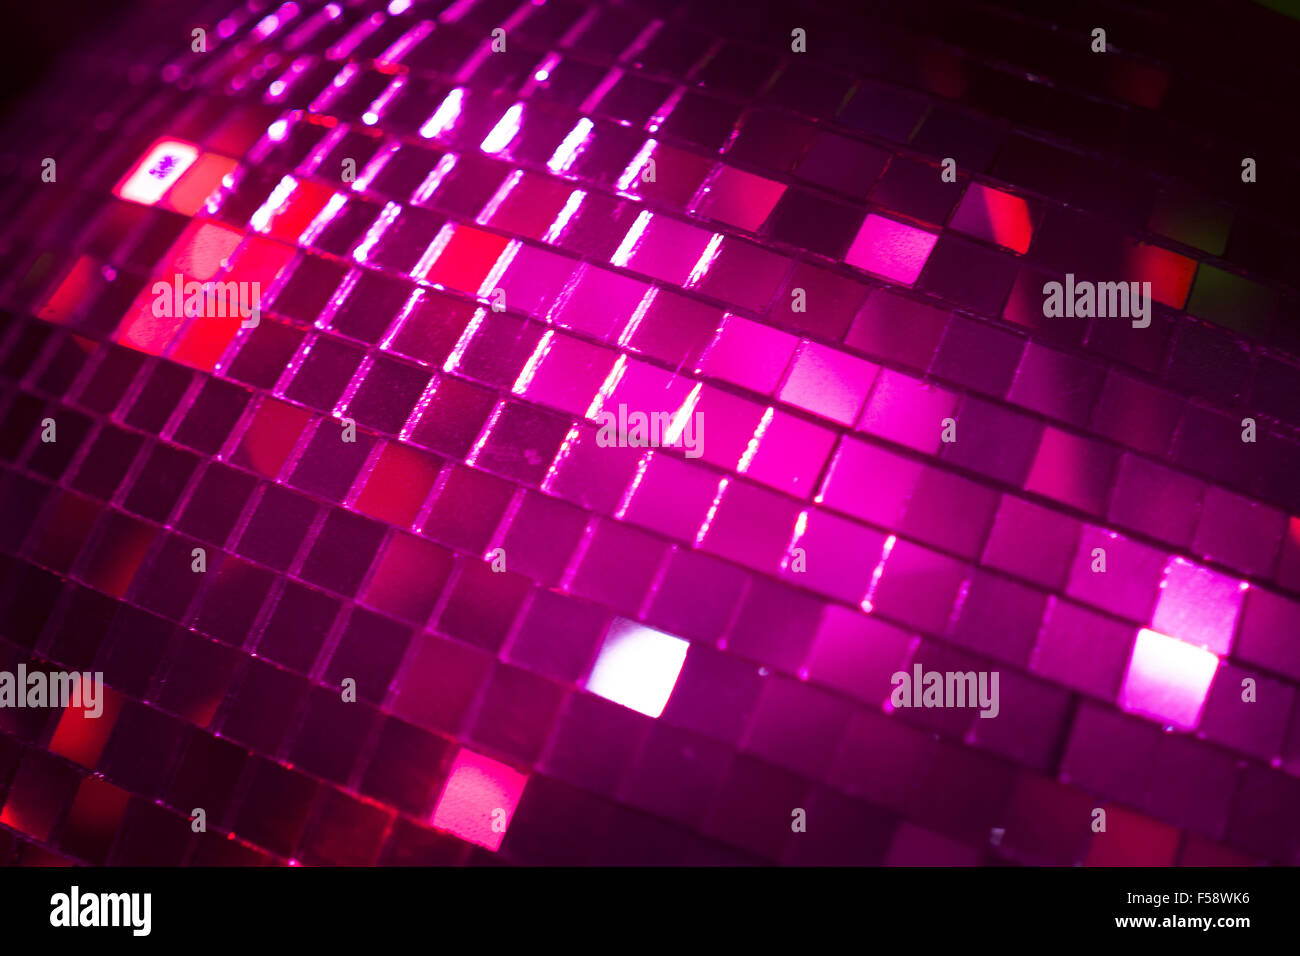 Disco Ball In Ibiza House Techno Dance Music Wedding Reception Party Nightclub With Colored Lighting